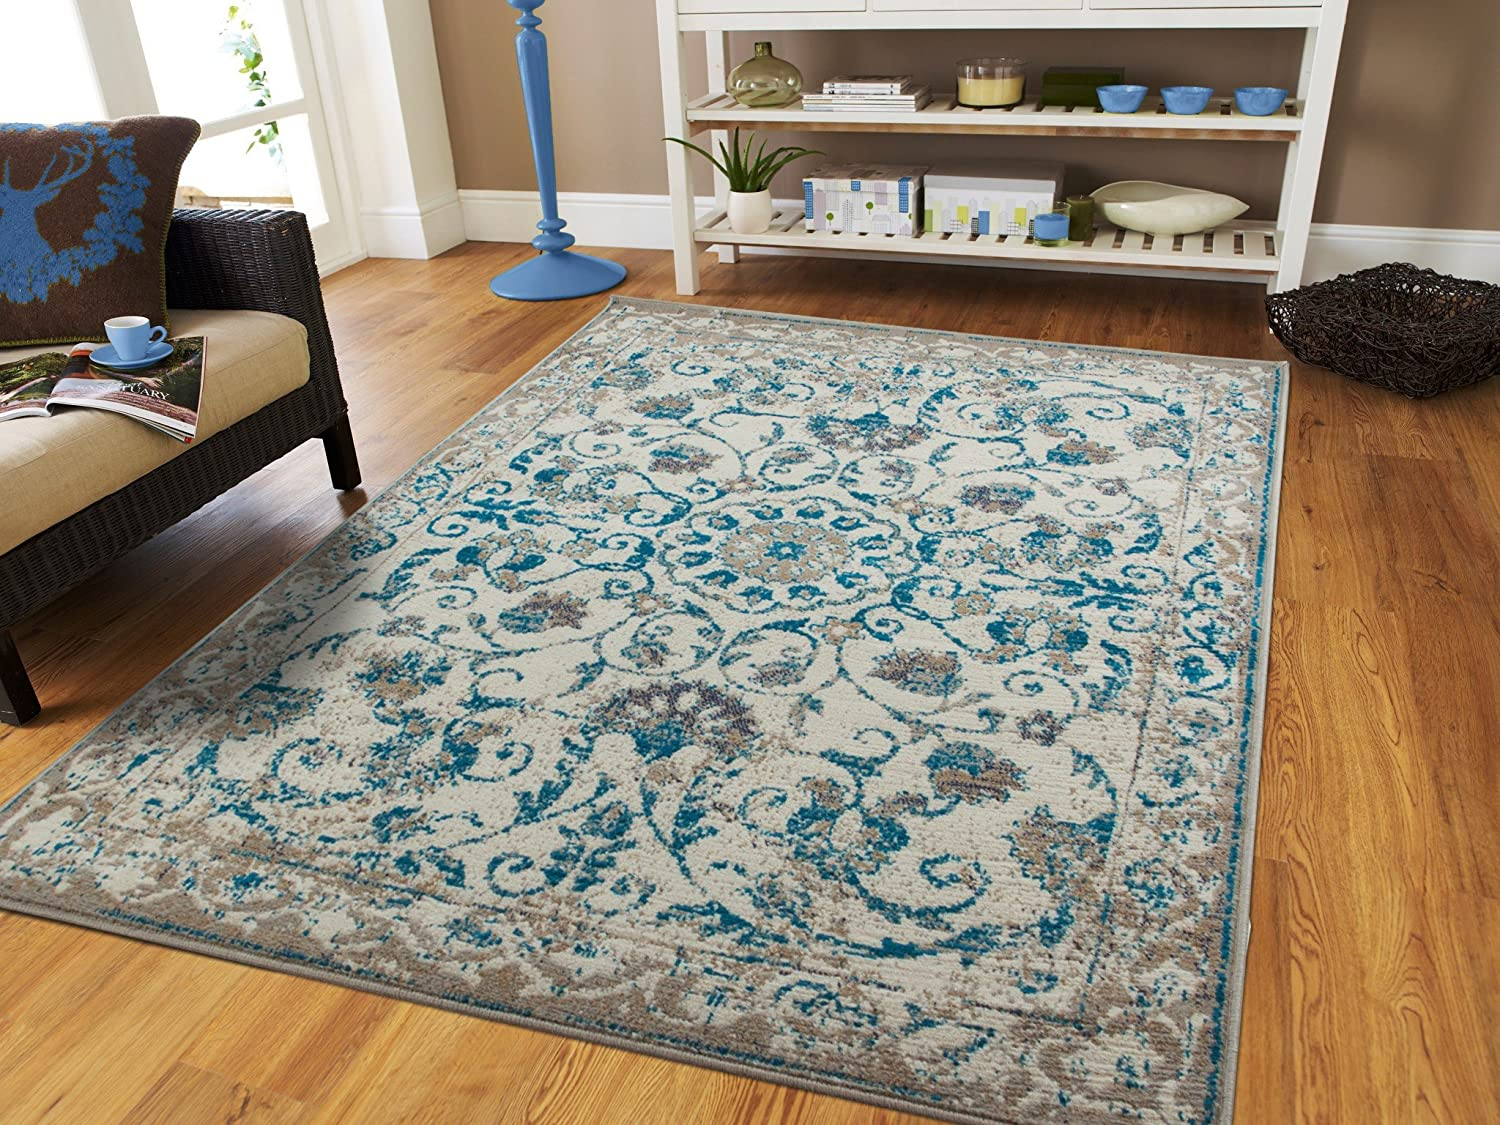 Amazon.com: Traditional Vintage Area Rug Distressed Rug Blue 2x8 ...